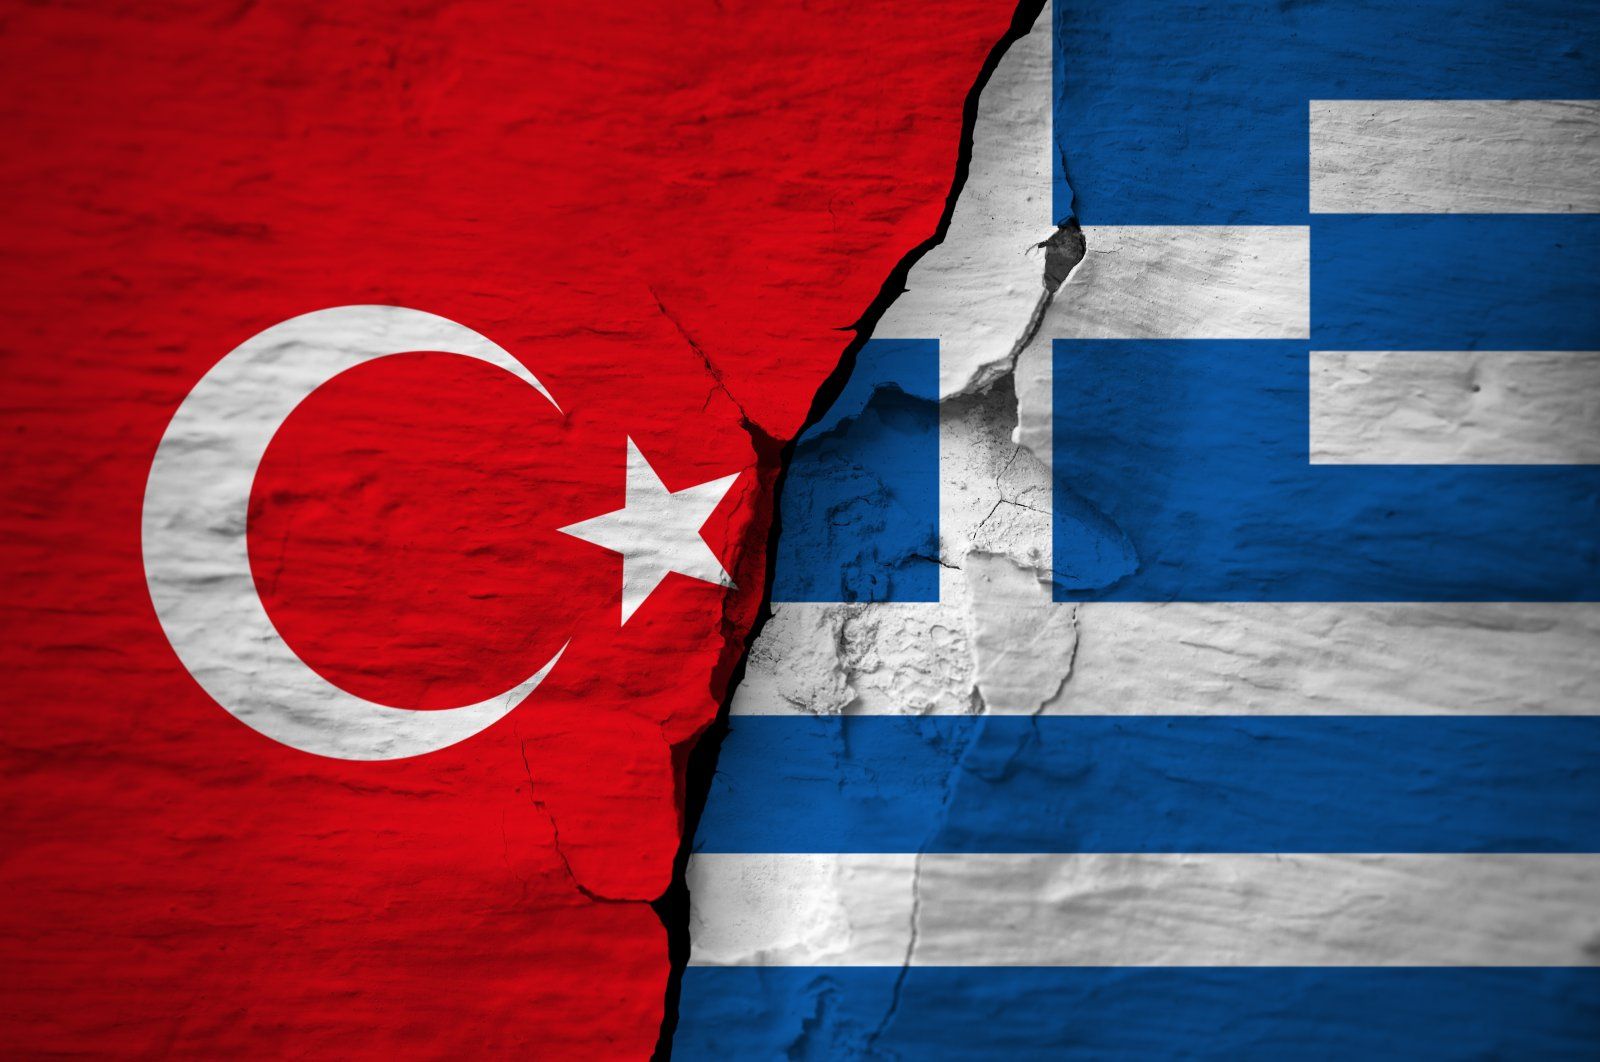 In this illustration, the flags of Turkey and Greece are seen on a cracked concrete wall. (Photo by Shutterstock)